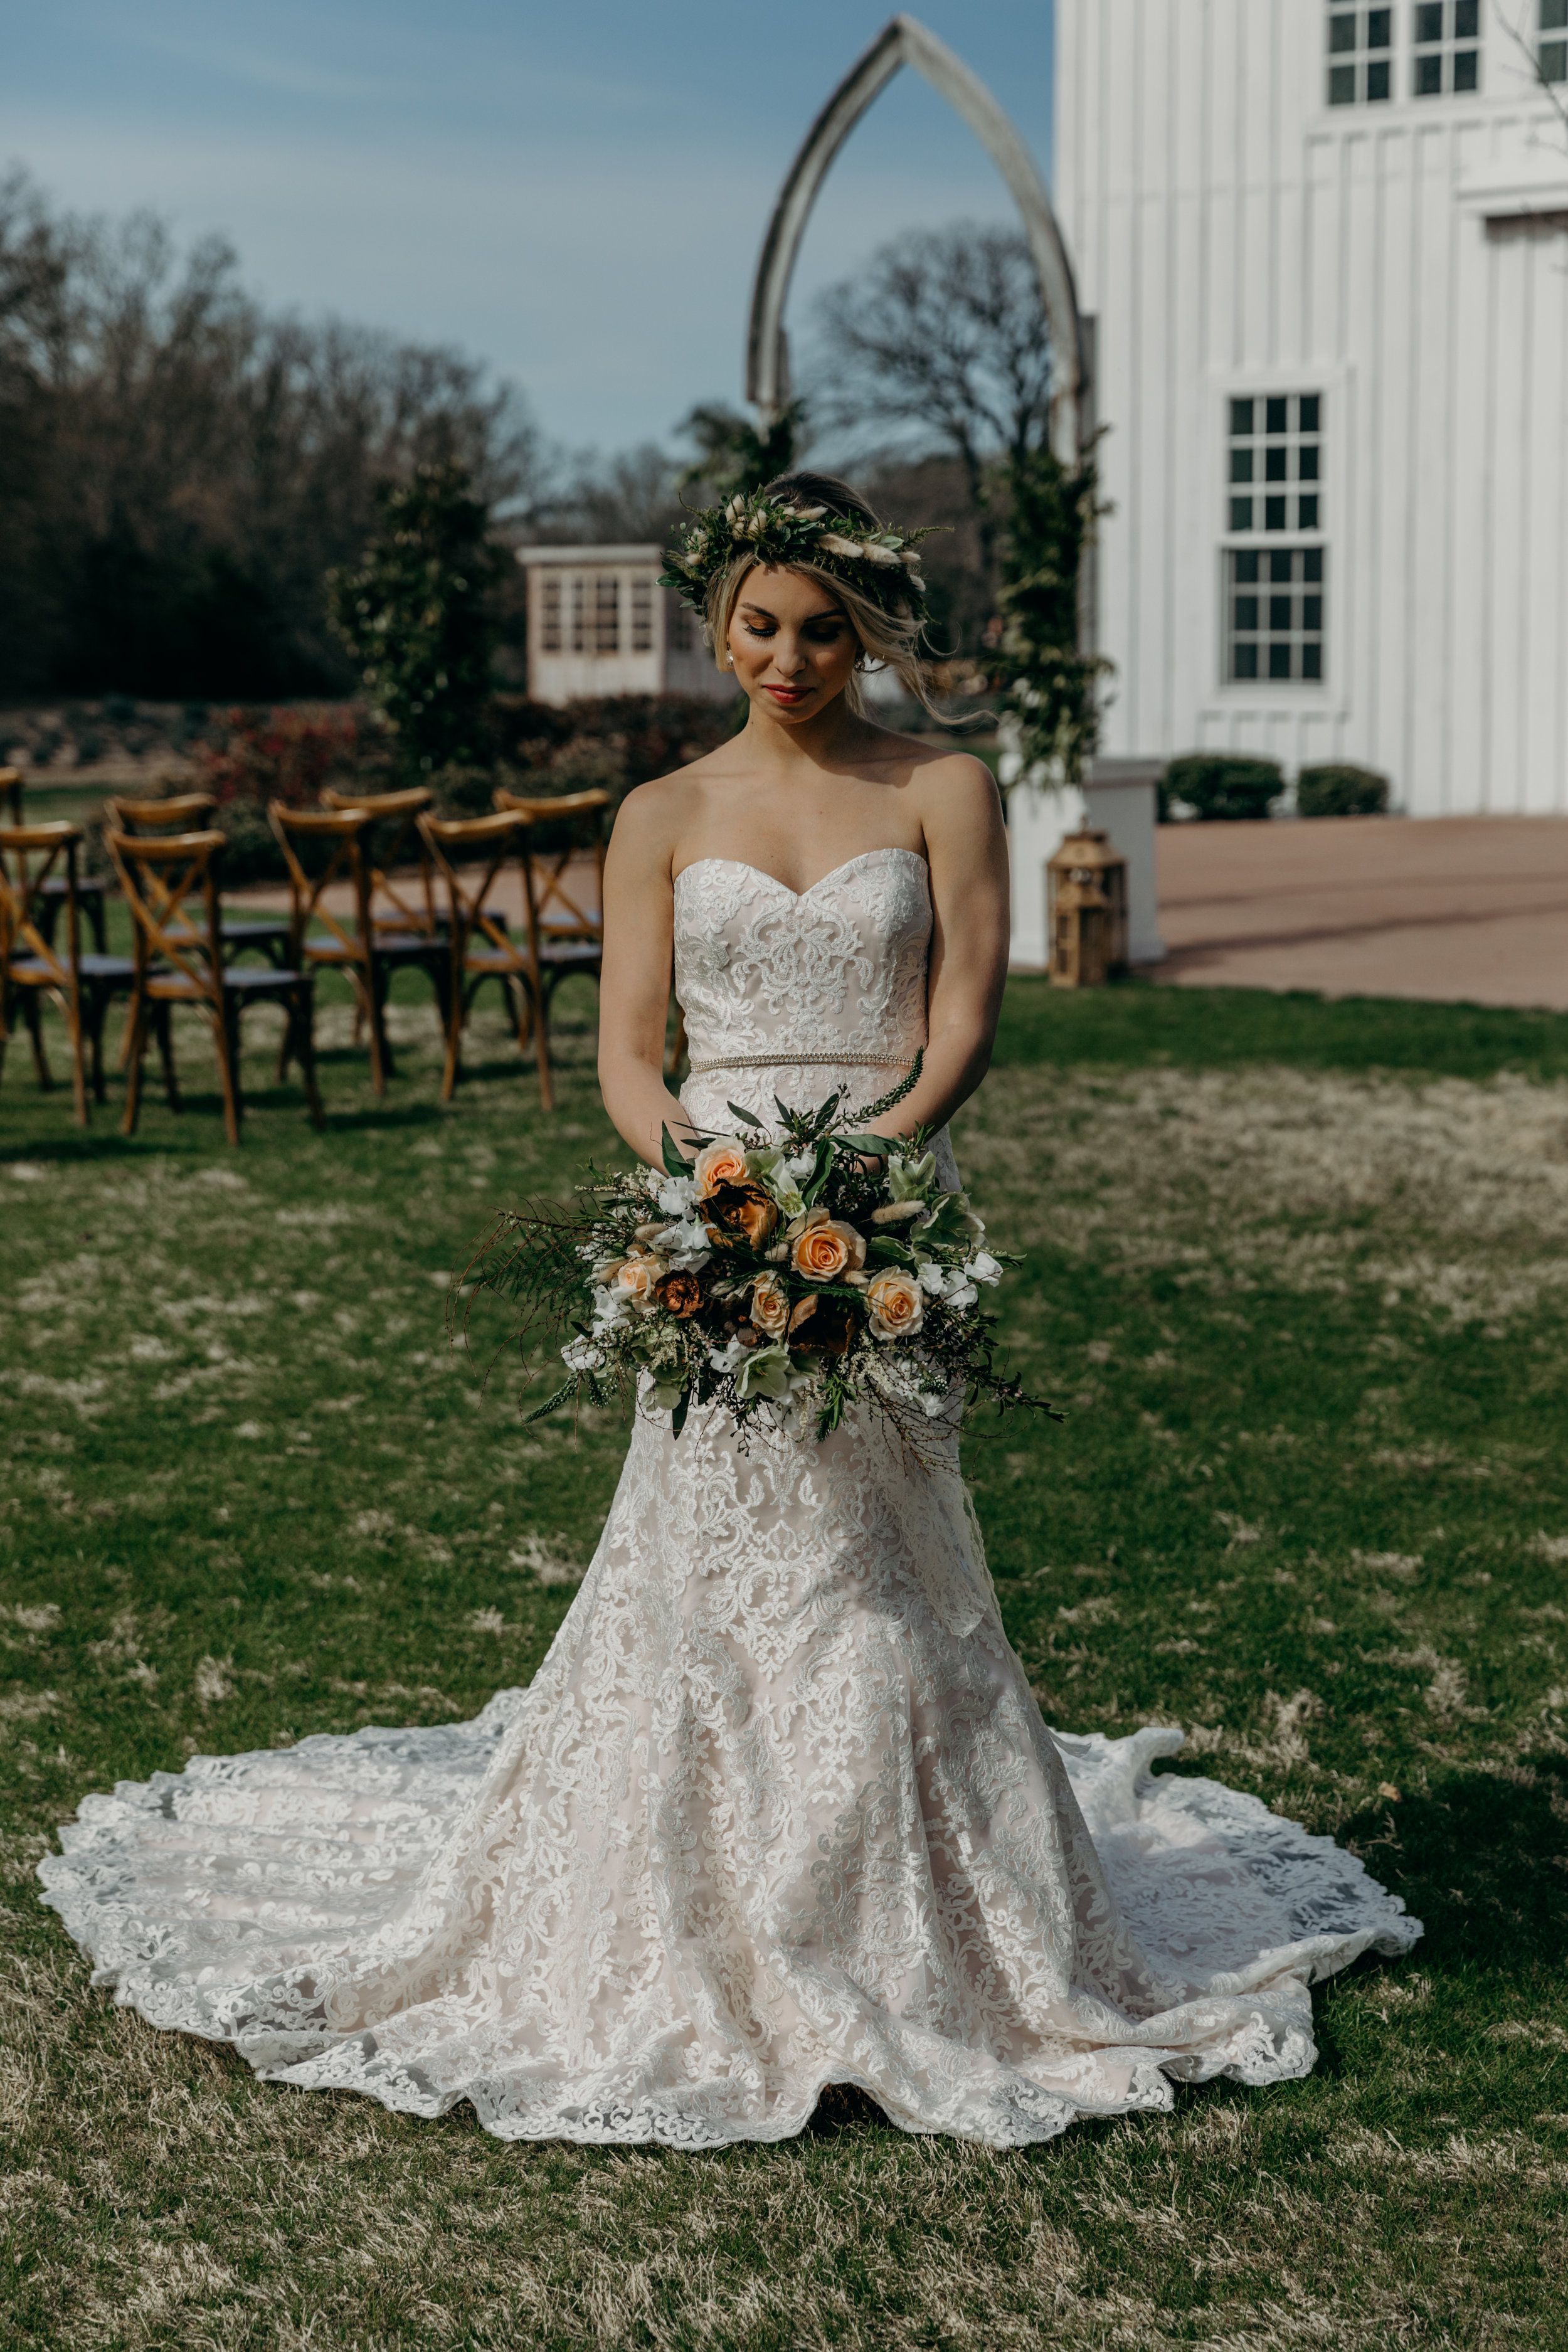 TheWhiteSparrowStyledWeddingShootinTexas-21.jpg